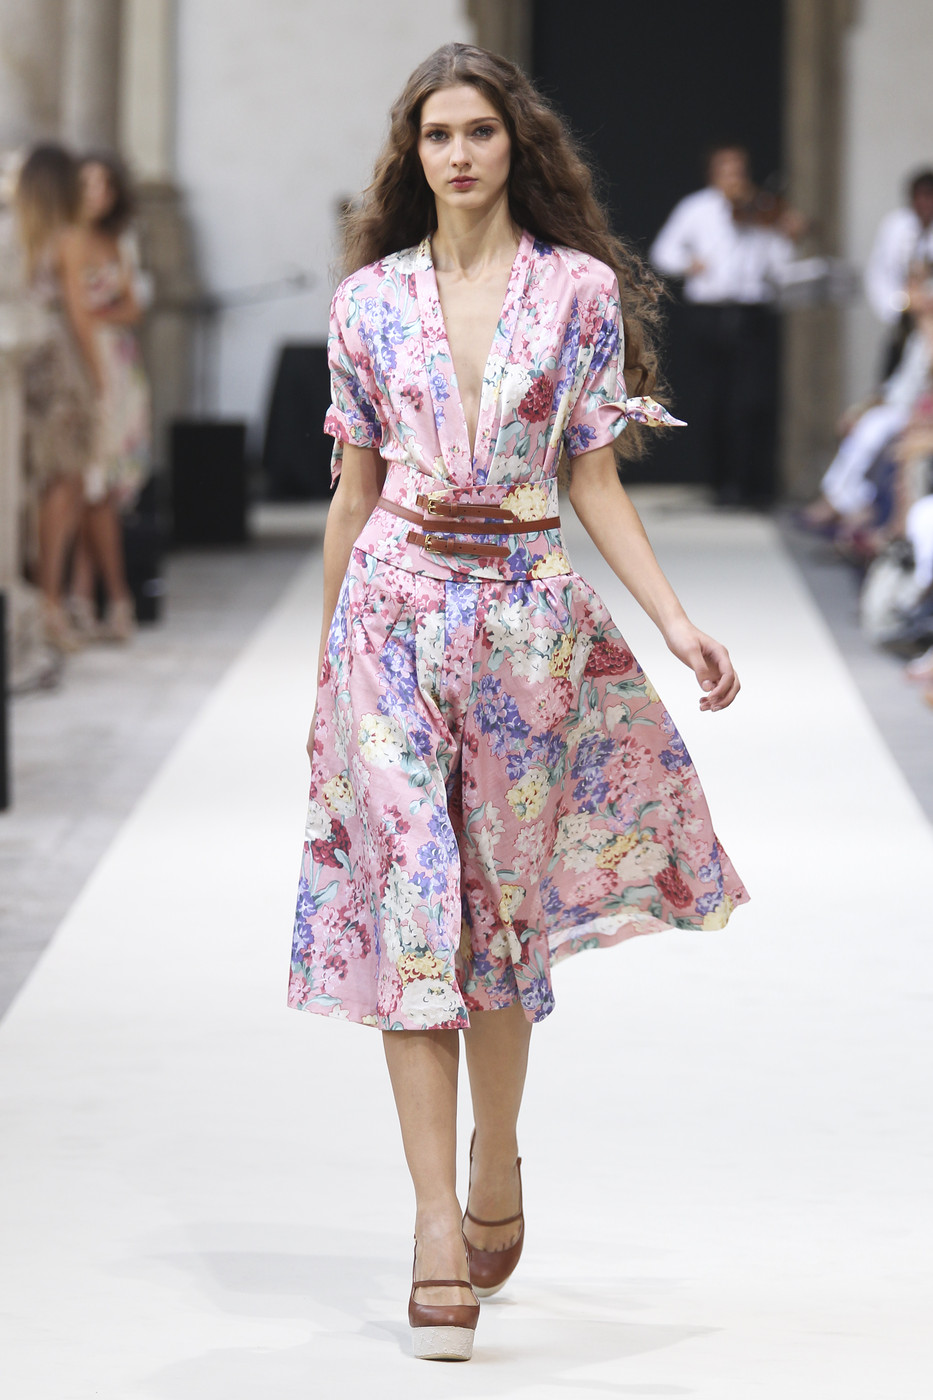 via fashioned by love | Louisa Beccaria Spring/Summer 2011 | floral trend